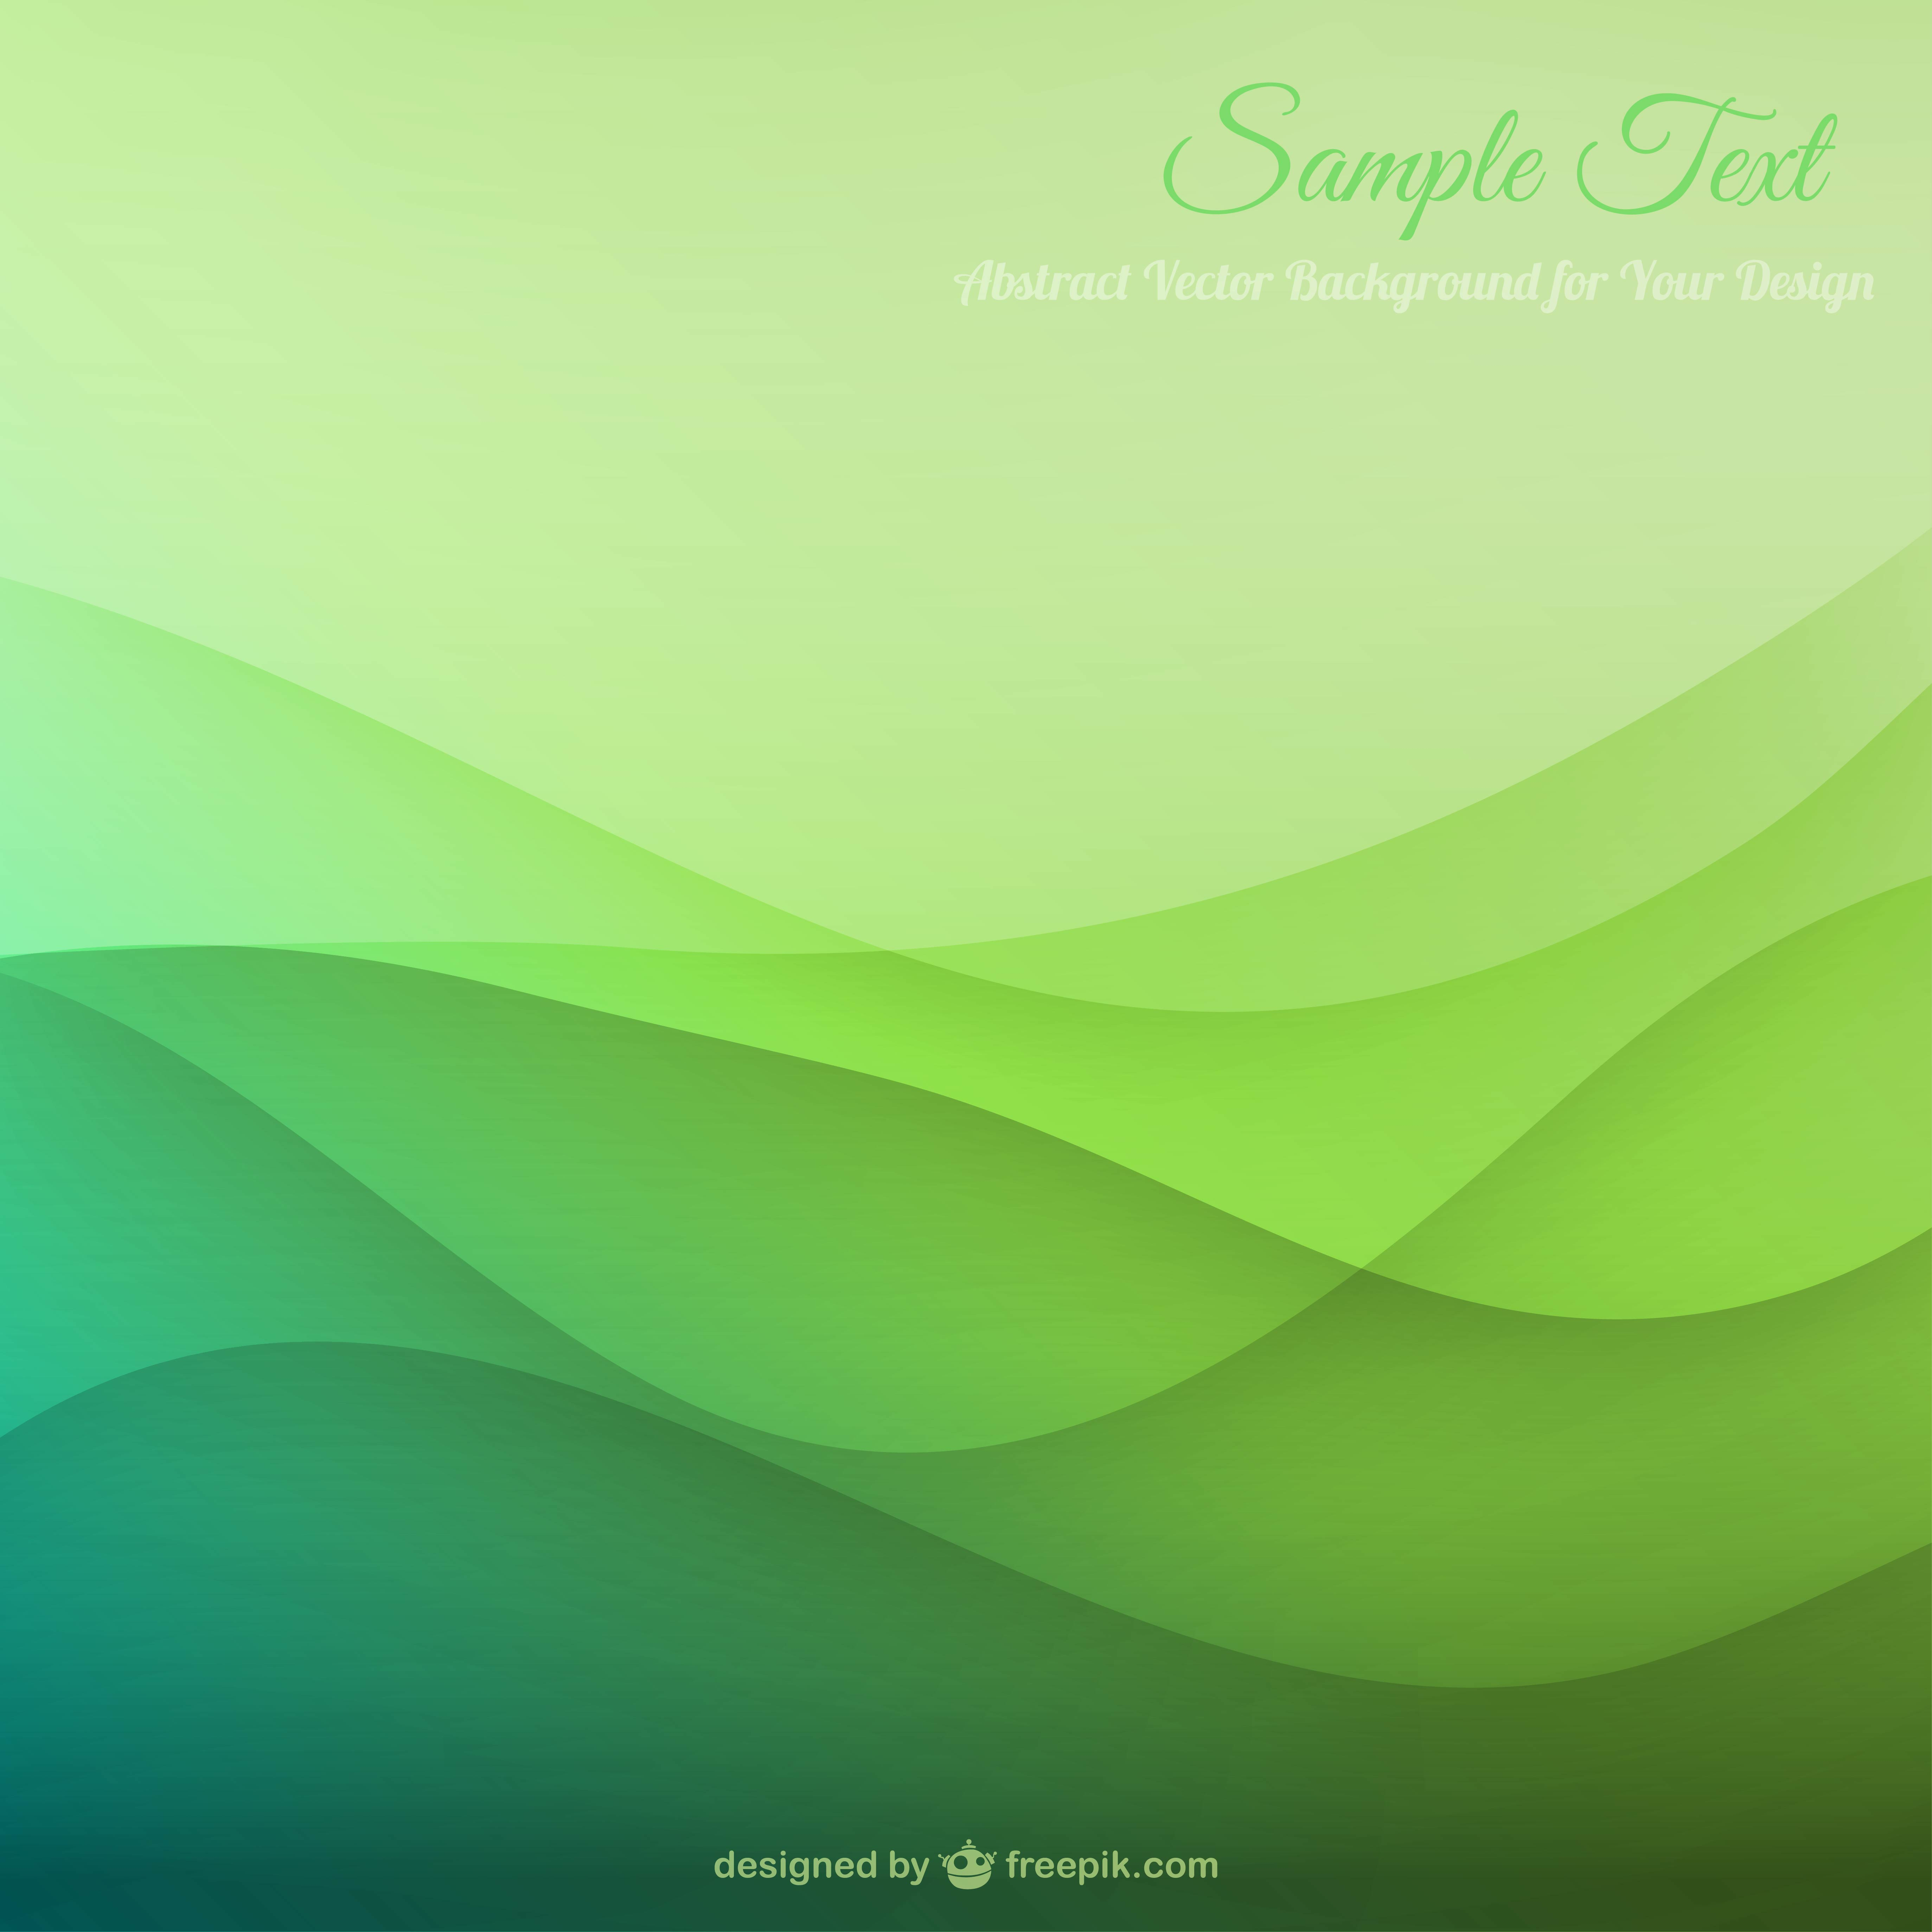 Green Wavy Abstract Background Material, Wallpaper, Wave